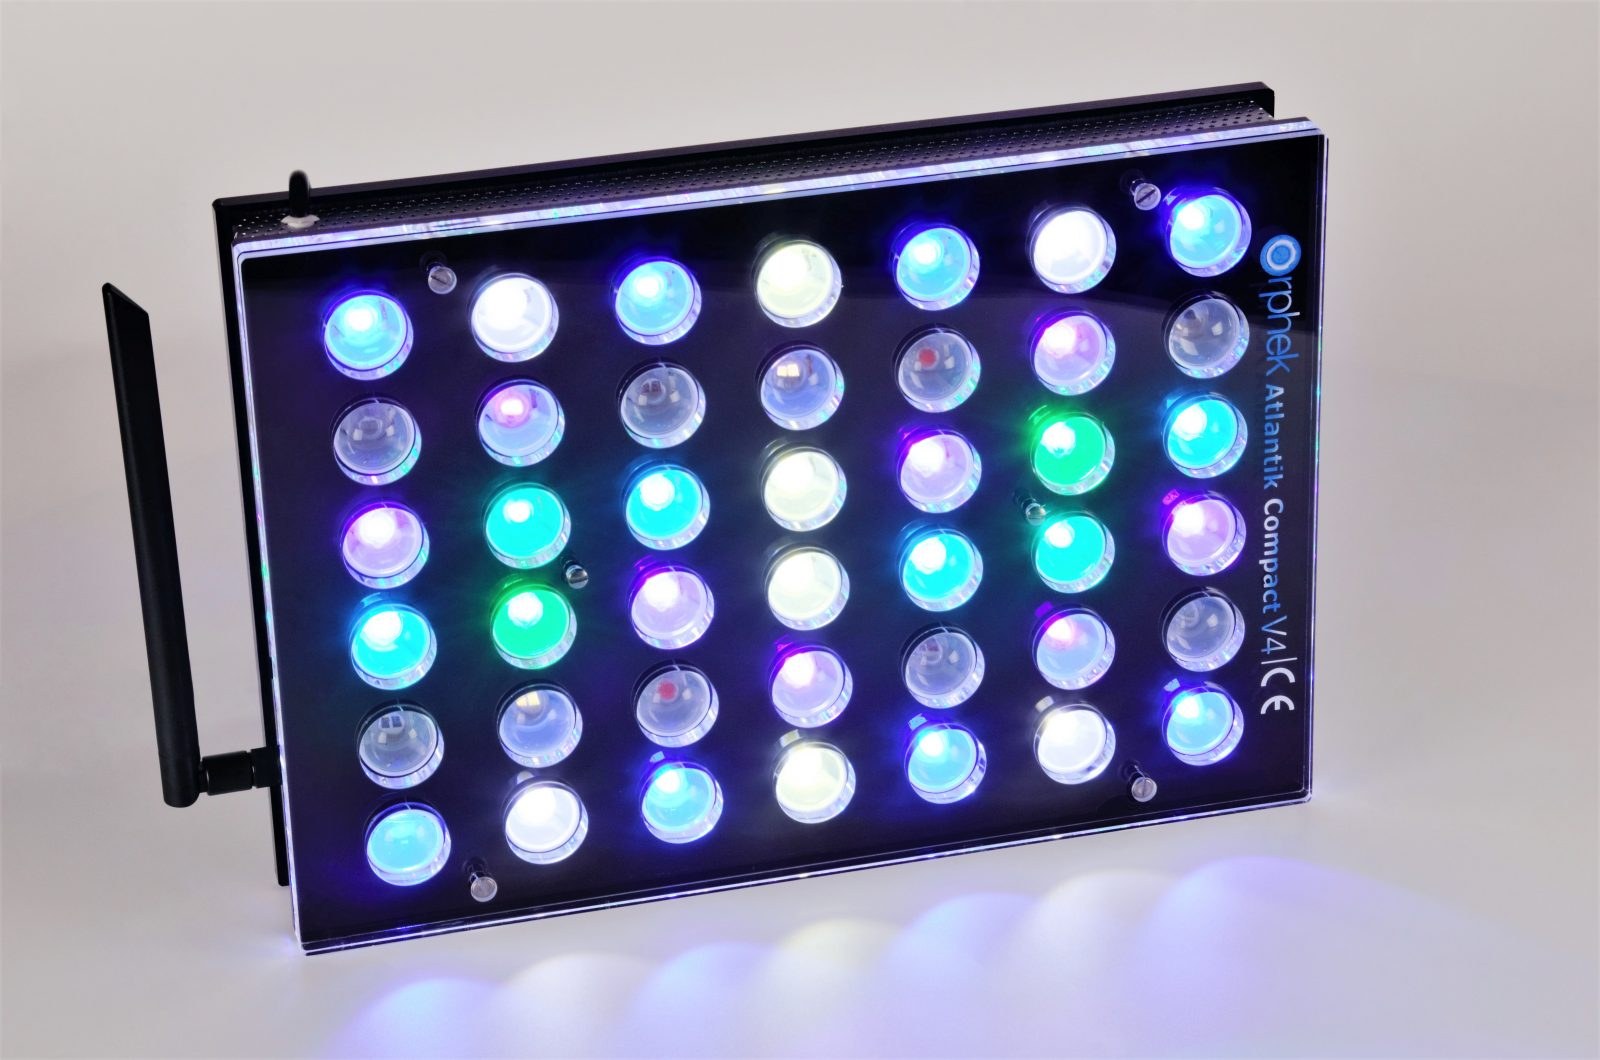 Orphek-Aquarium-LED-Lighting-Atlantik -Compact-V4-light -on-channel 1 + 2 + 3